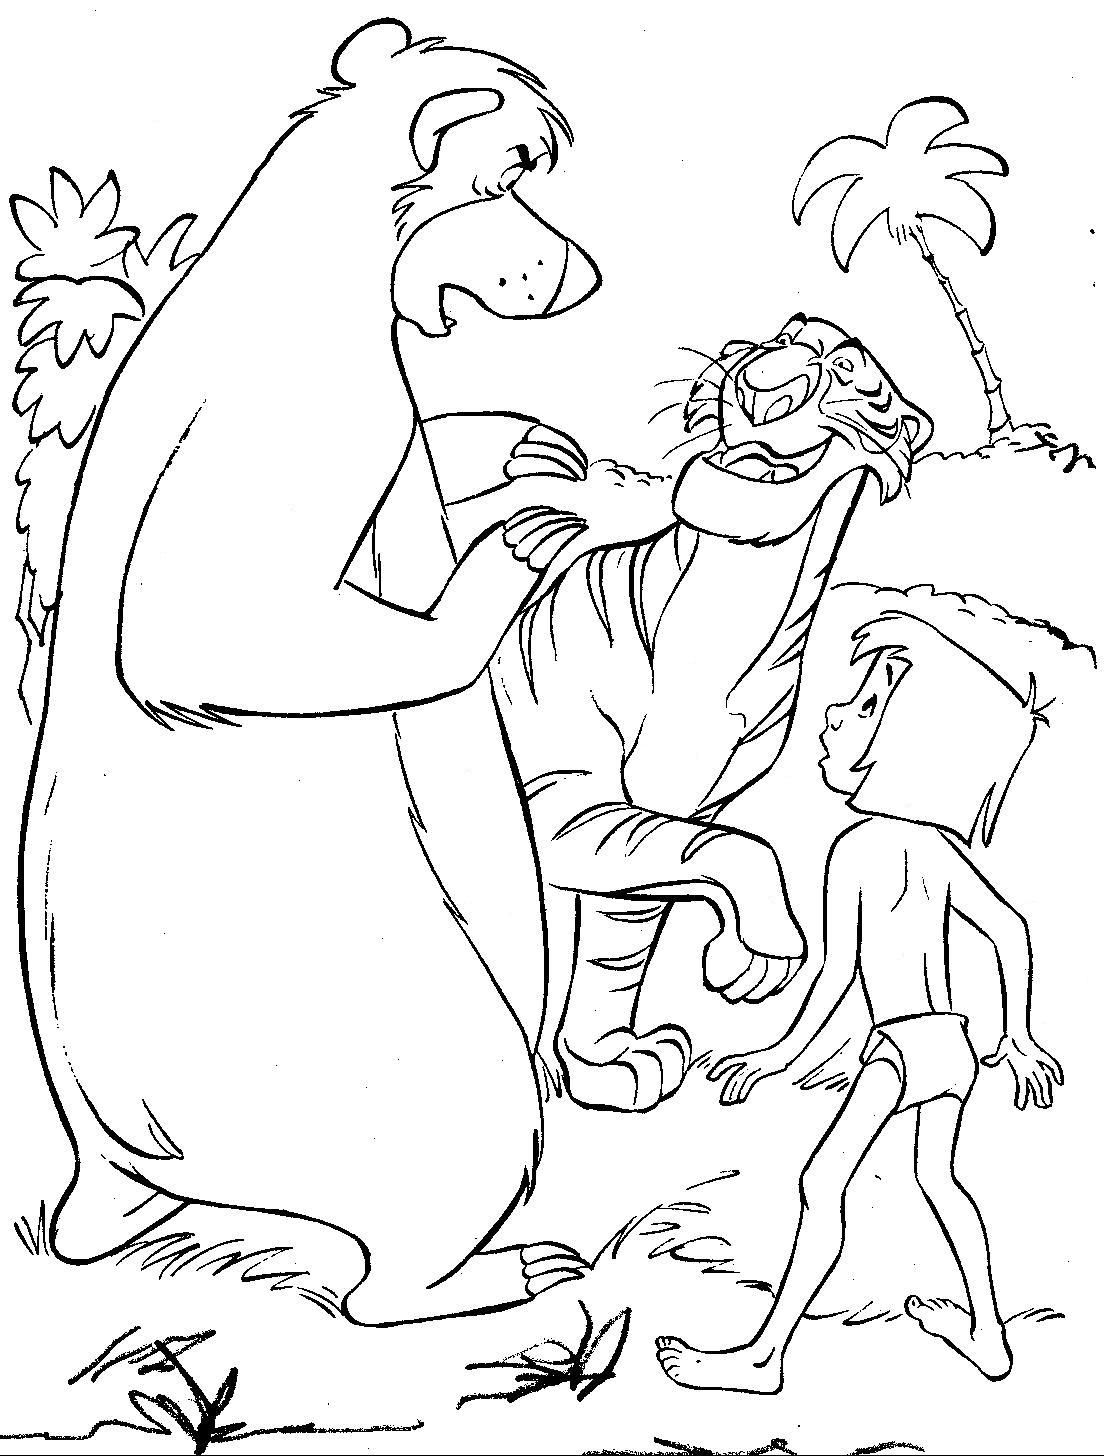 The Jungle Book Coloring Pages For Kids Printable Free Cartoon Coloring Pages Coloring Books Colouring Pages